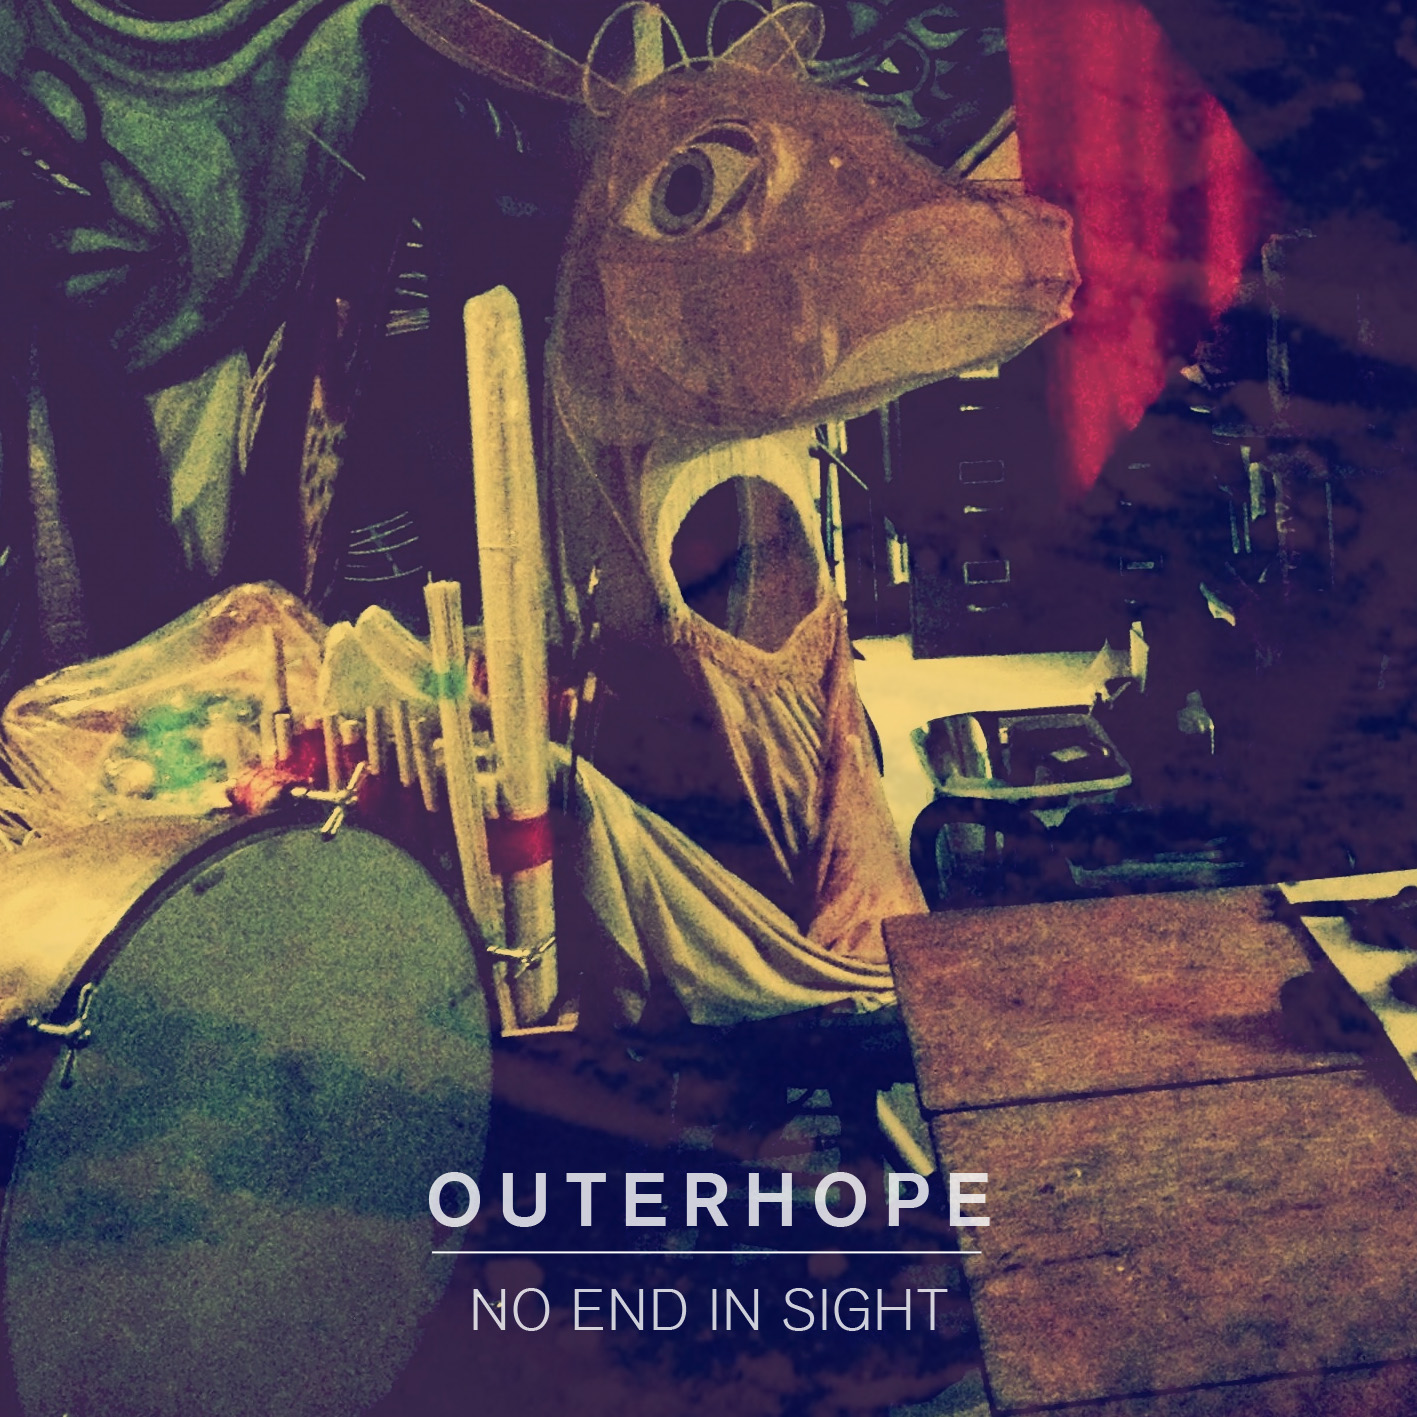 Outerhope - No End In Sight